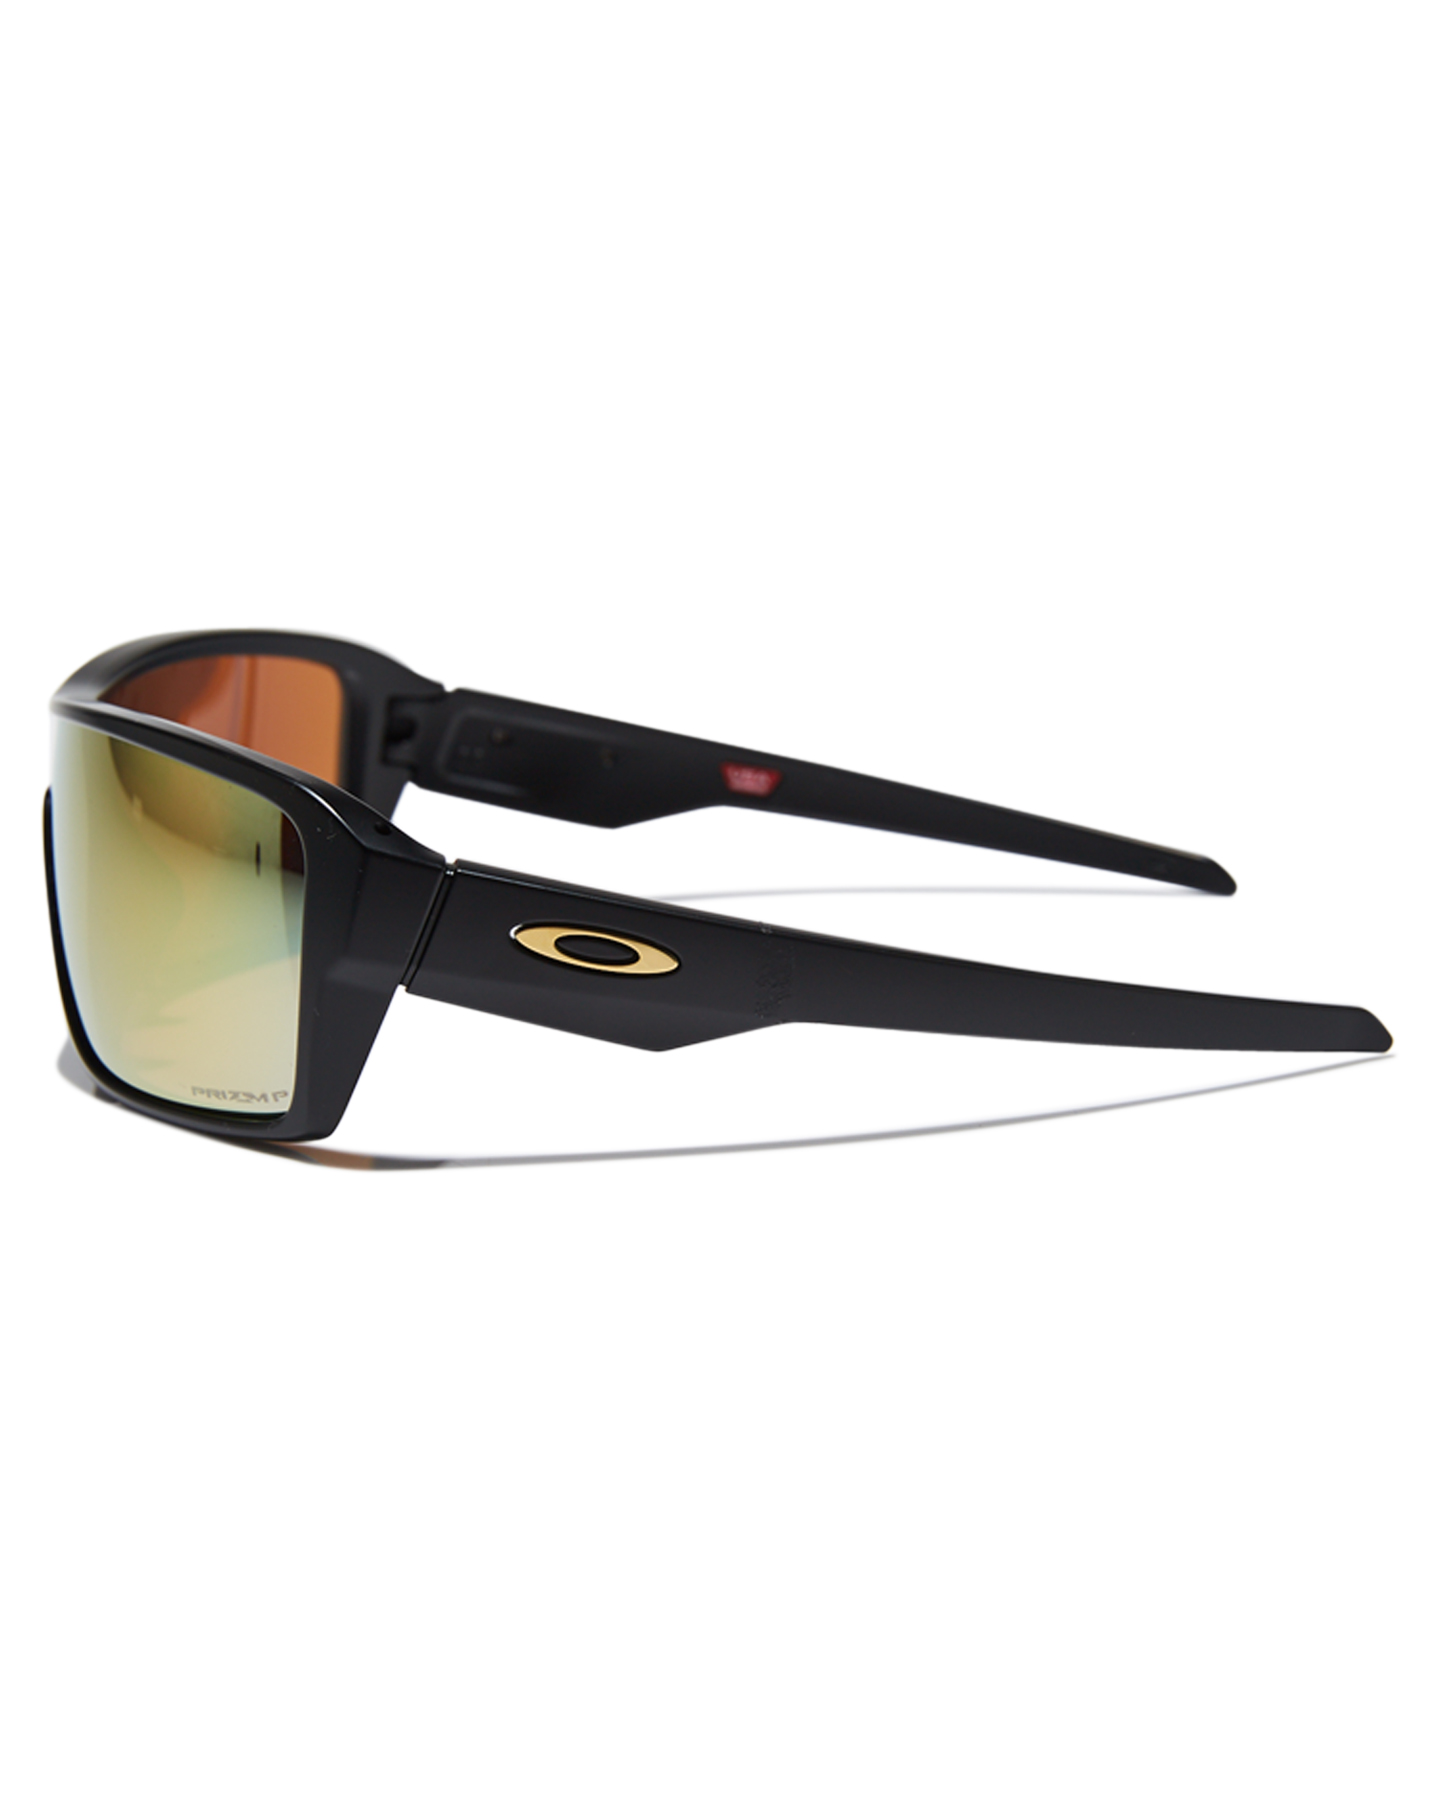 94880be898 ... MATTE BLACK PRIZM RUBY MENS ACCESSORIES OAKLEY SUNGLASSES -  0OO9419-0527 ...